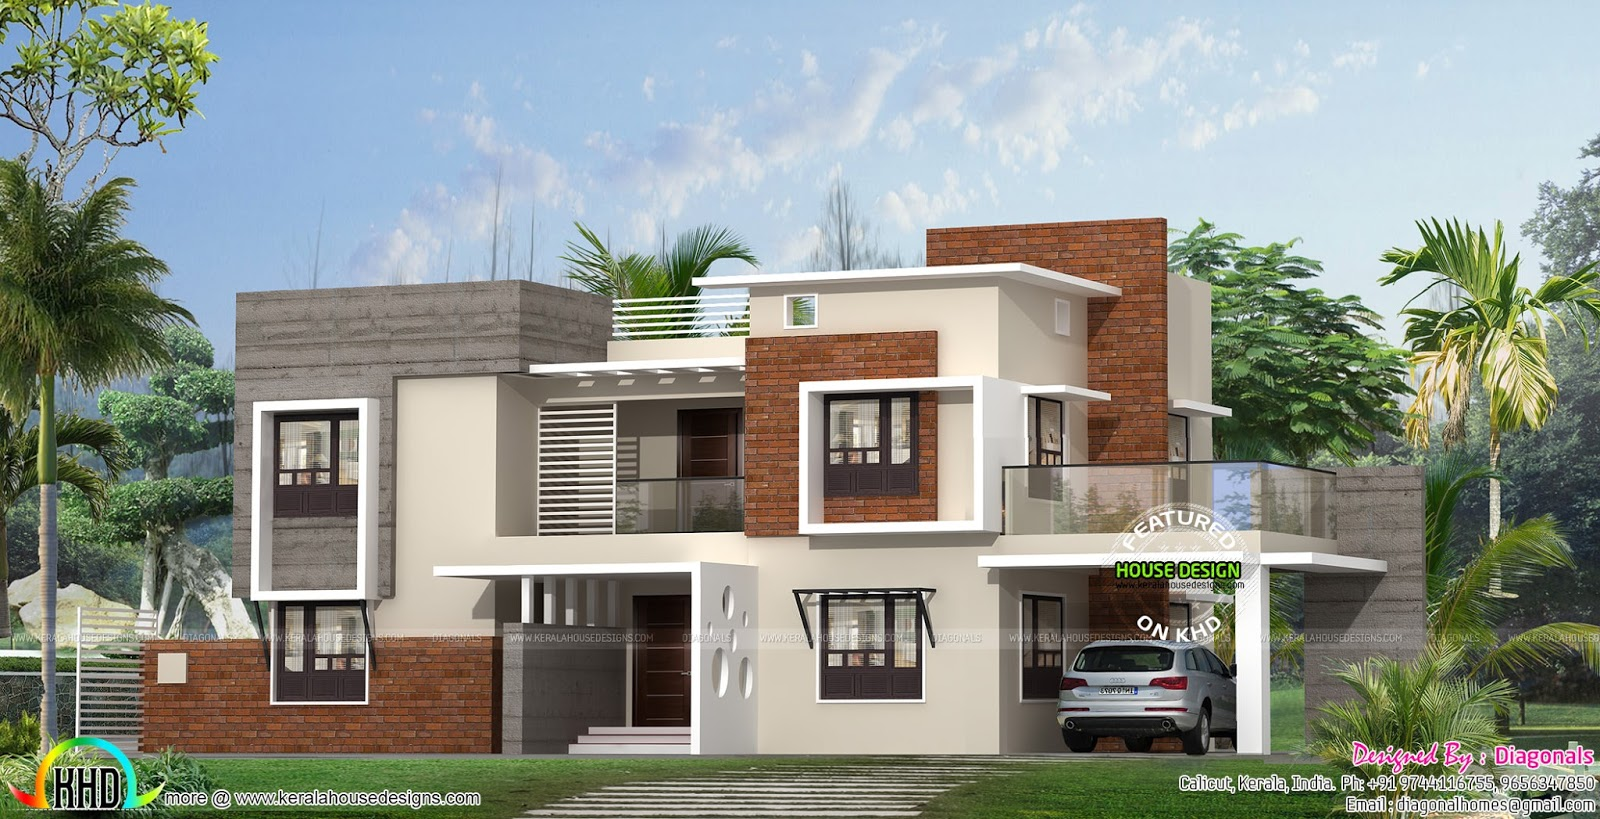 Box model modern flat roof home plan kerala home design for New model contemporary house